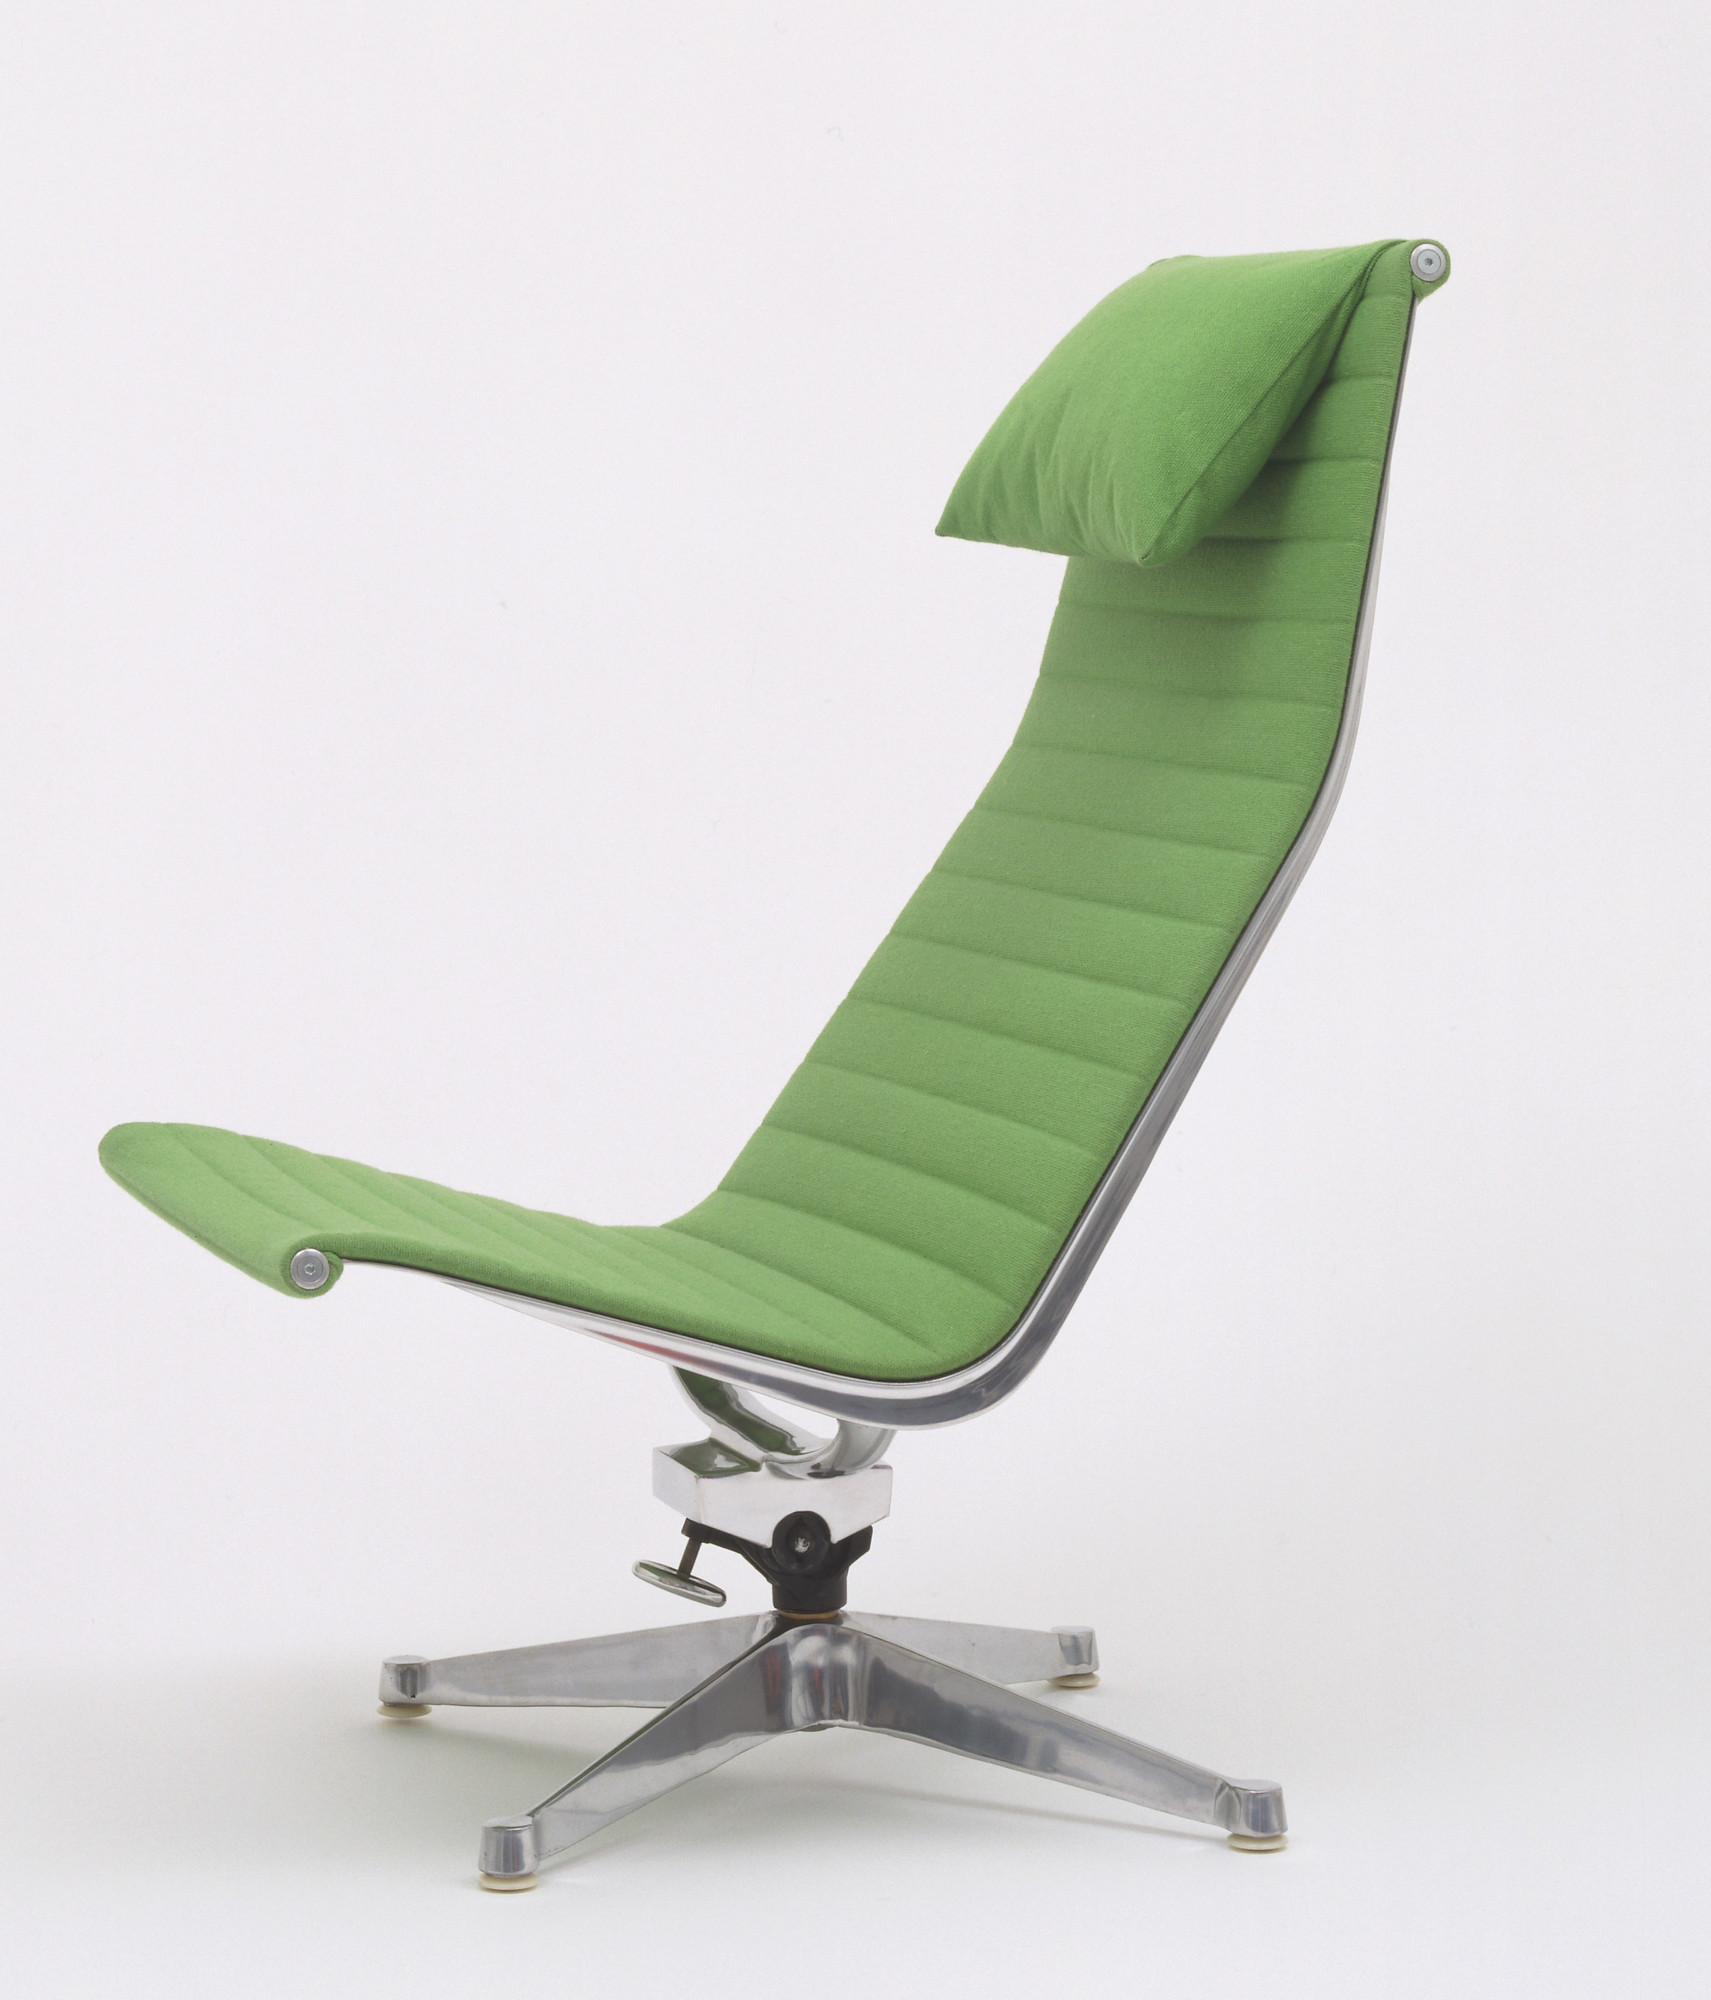 charles eames ray eames lounge chair 1958 moma